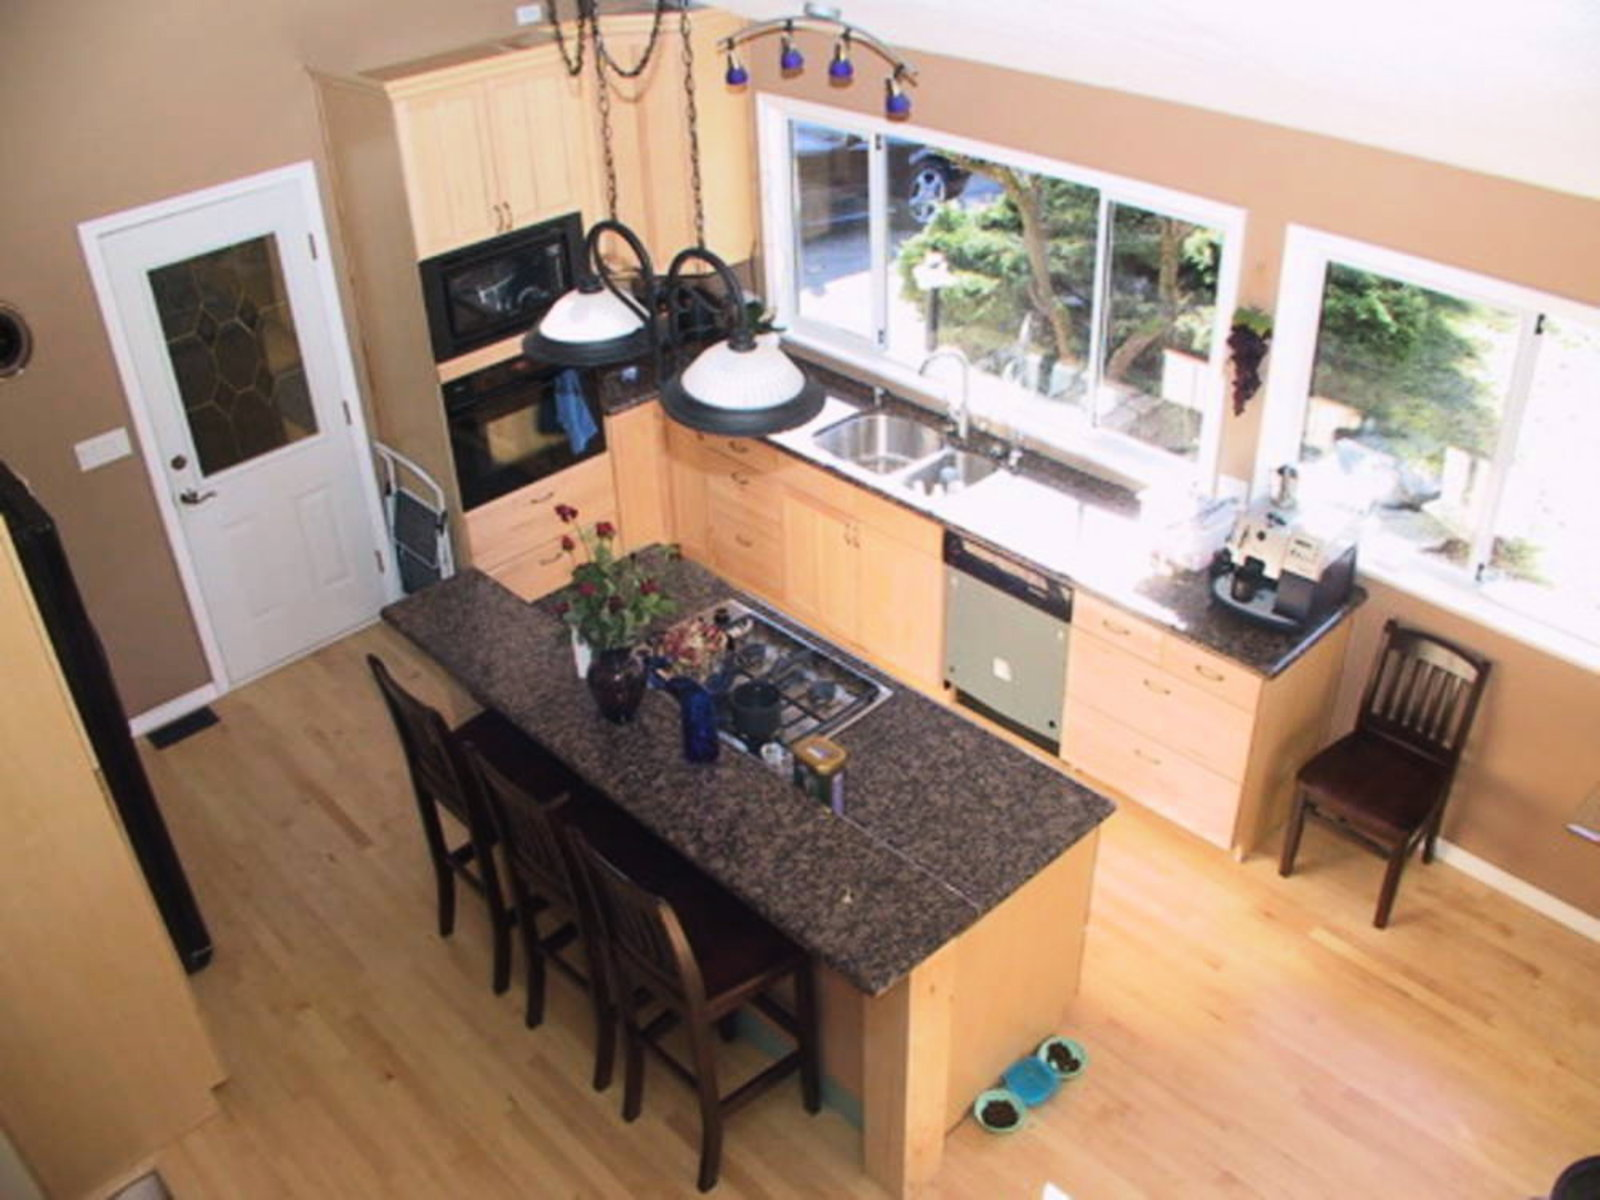 Kitchen Granite countertops, mable cabinets, vaulted ceilings, top of the line appliances